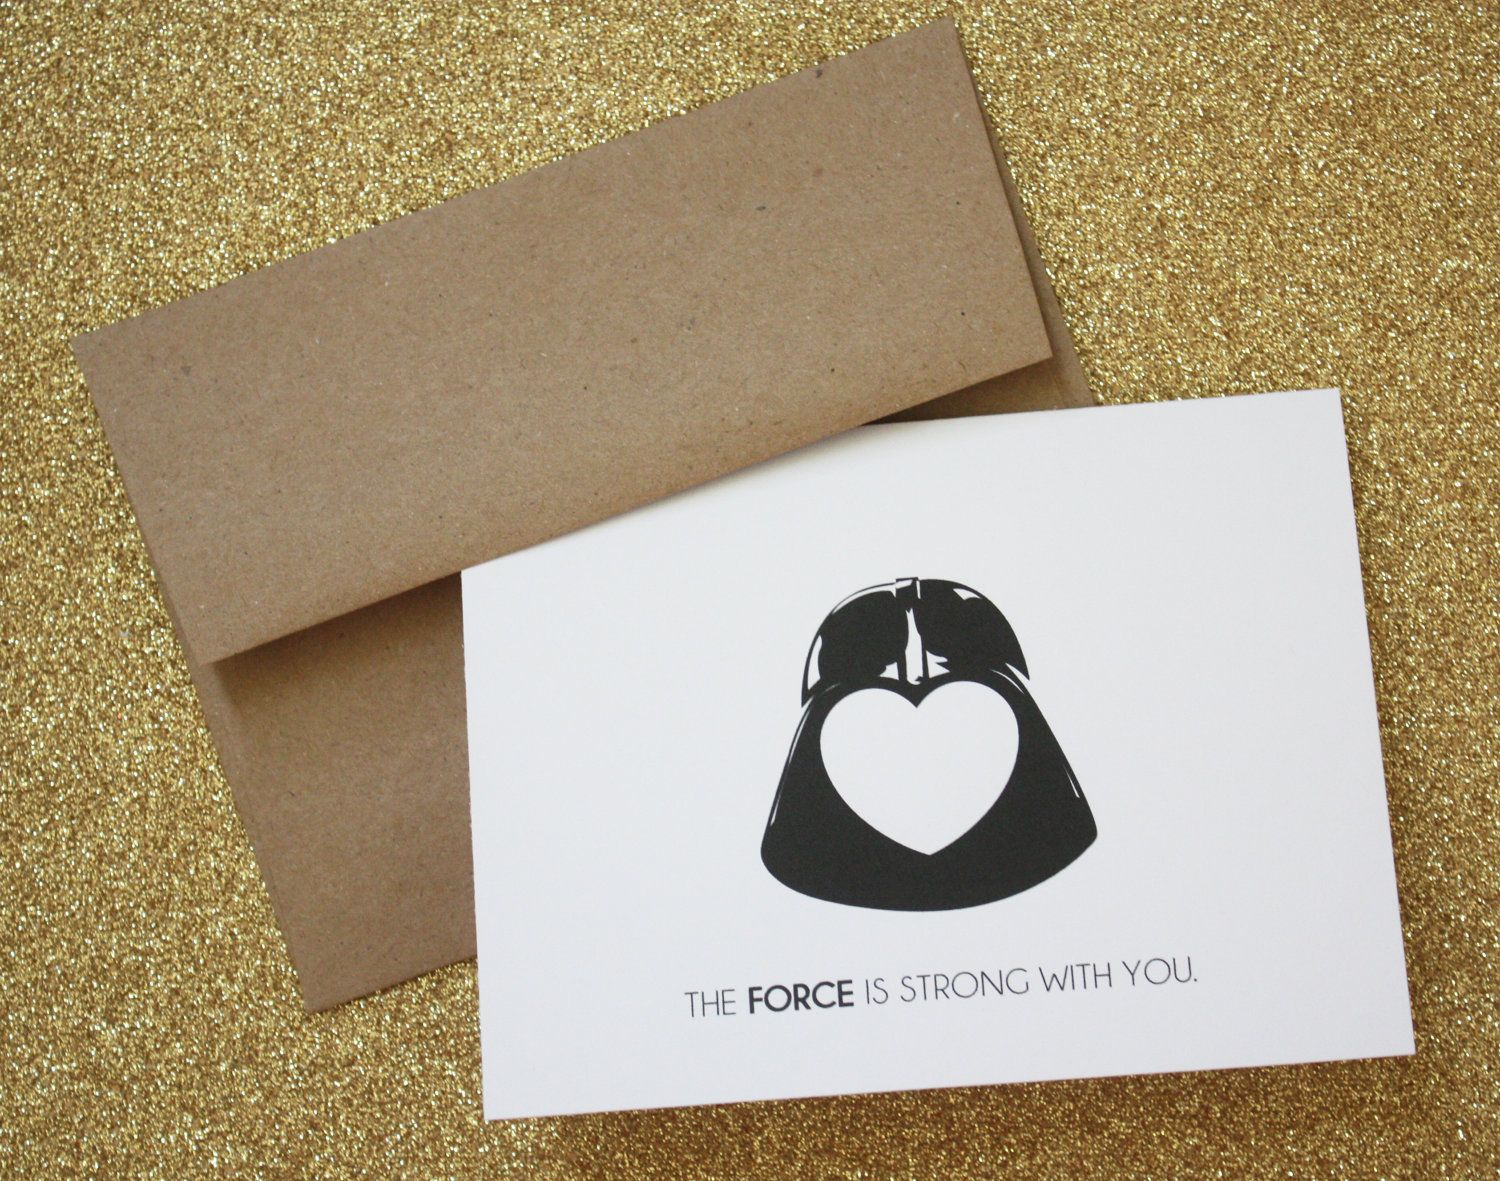 Love star wars card by dovedesignsshop on etsy